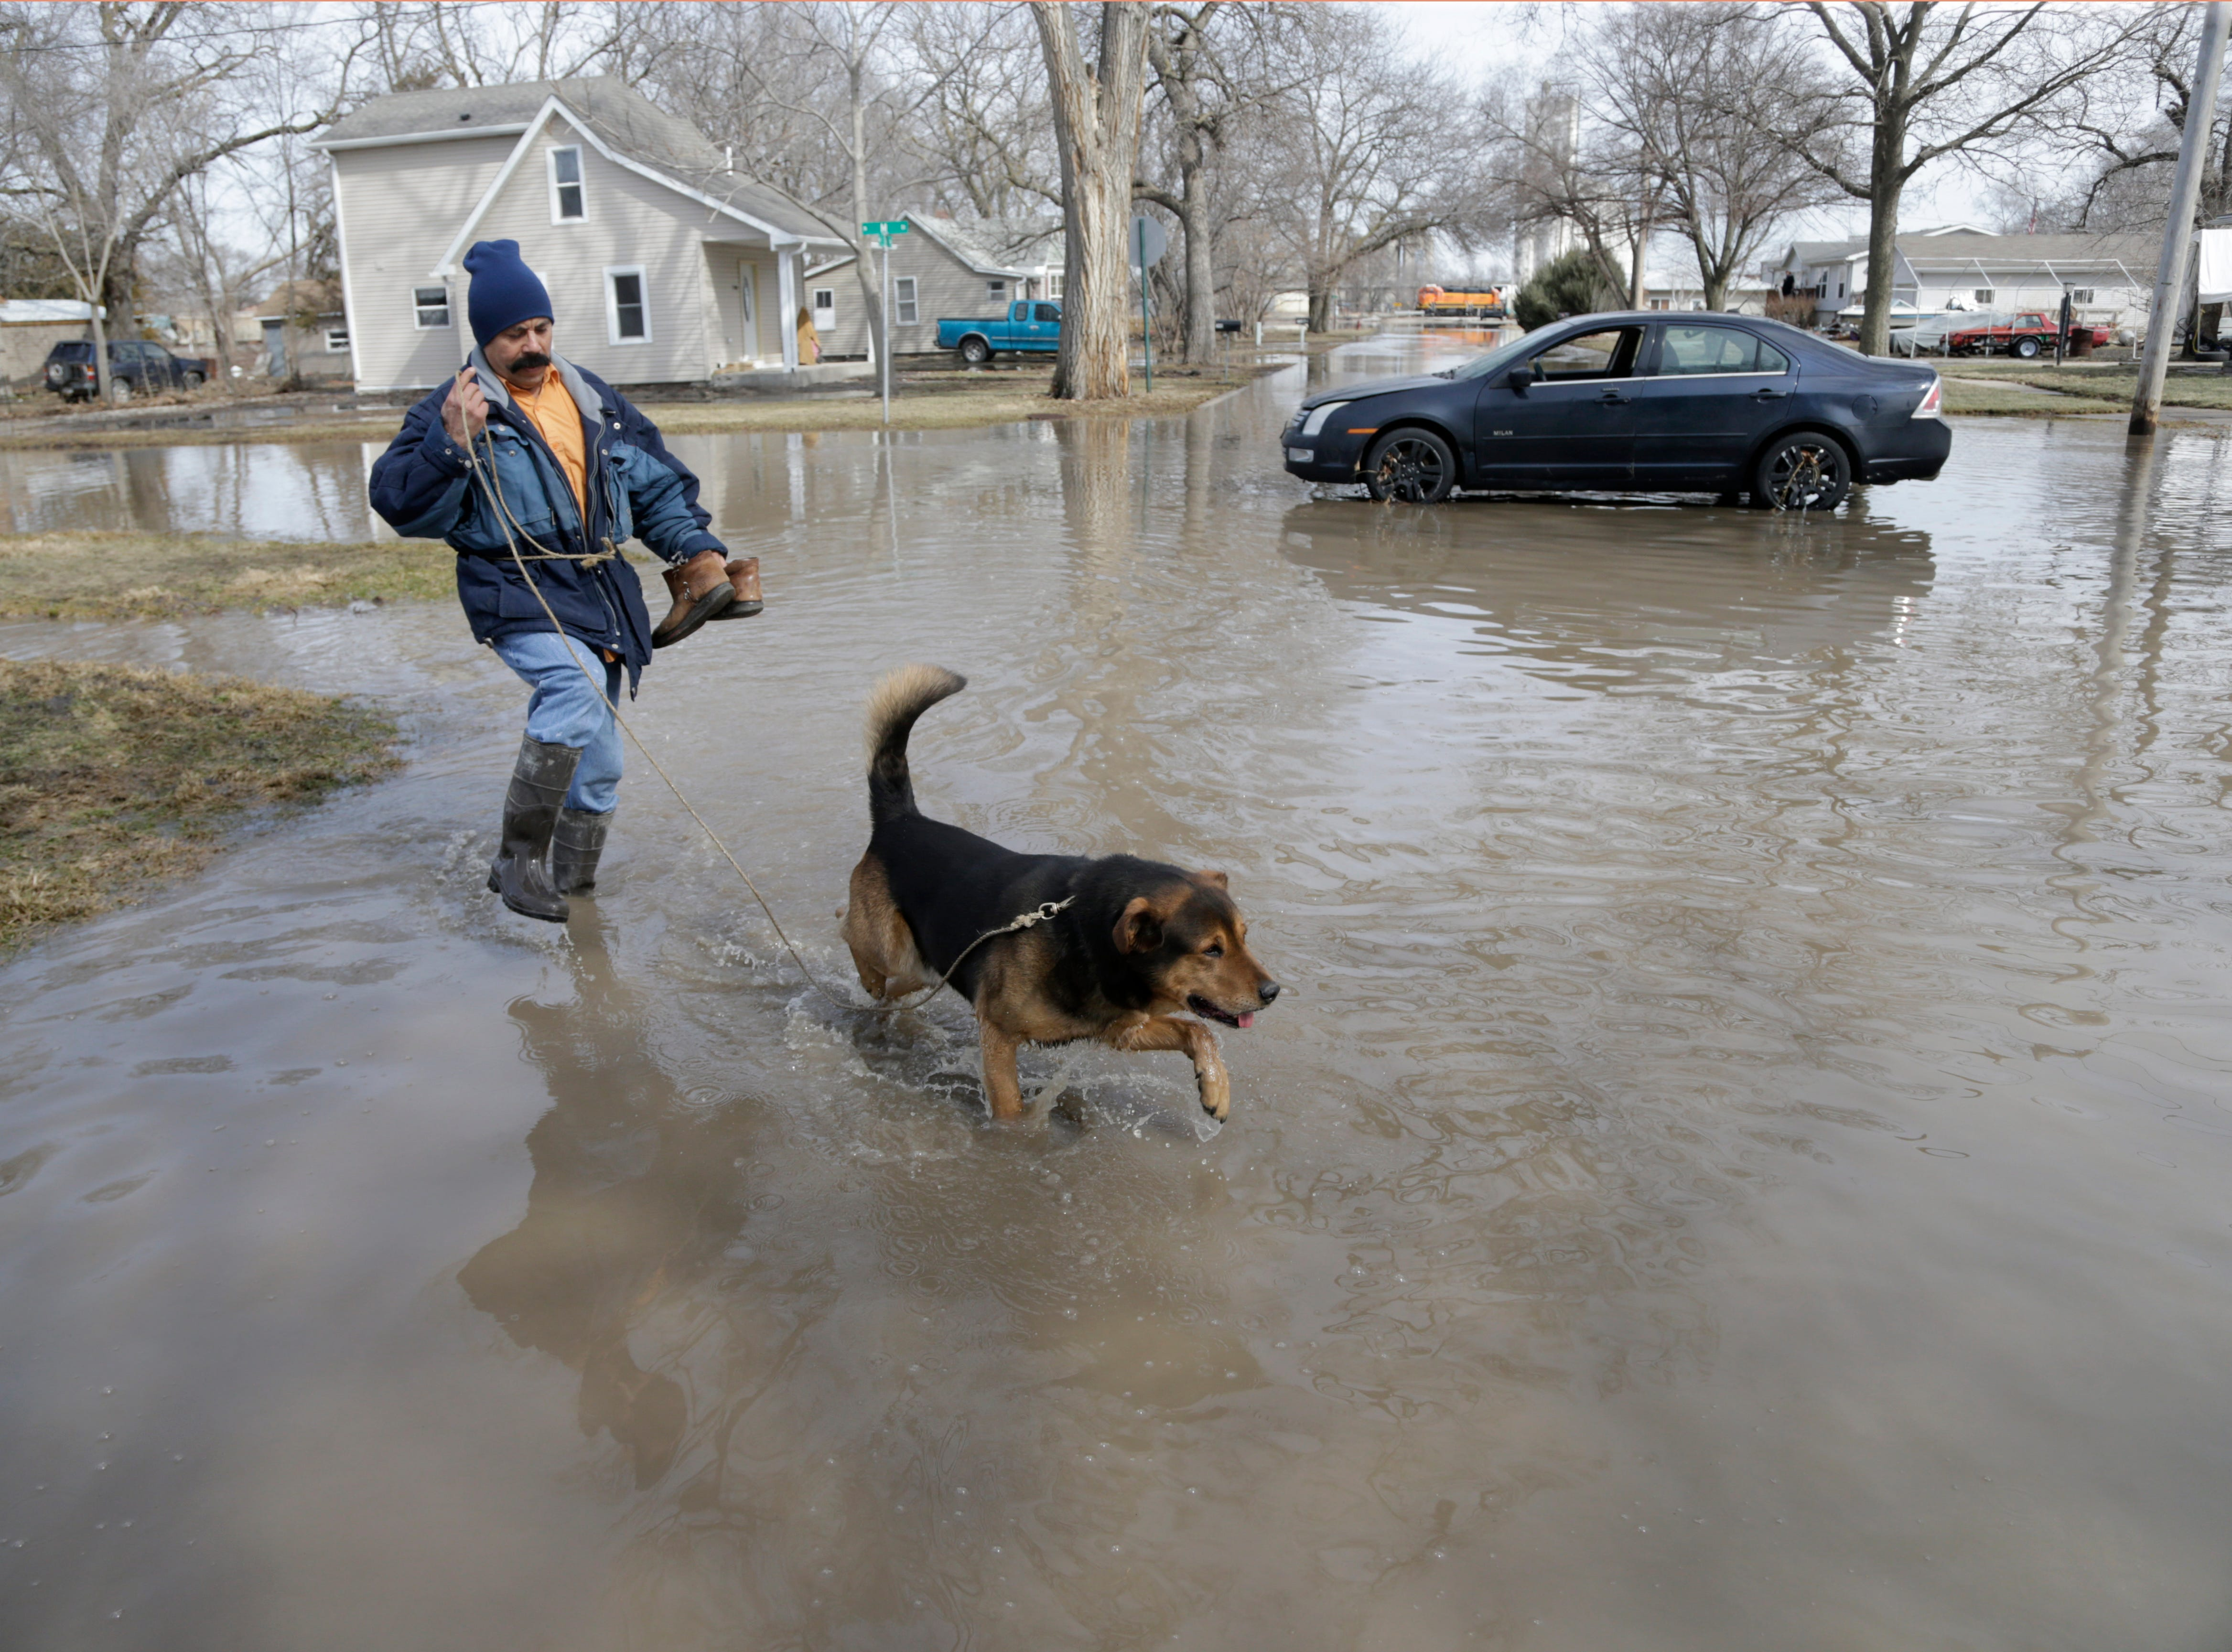 Trino Nuno and his dog Tyson navigate flooded streets in Fremont, Neb. on March 18, 2019.